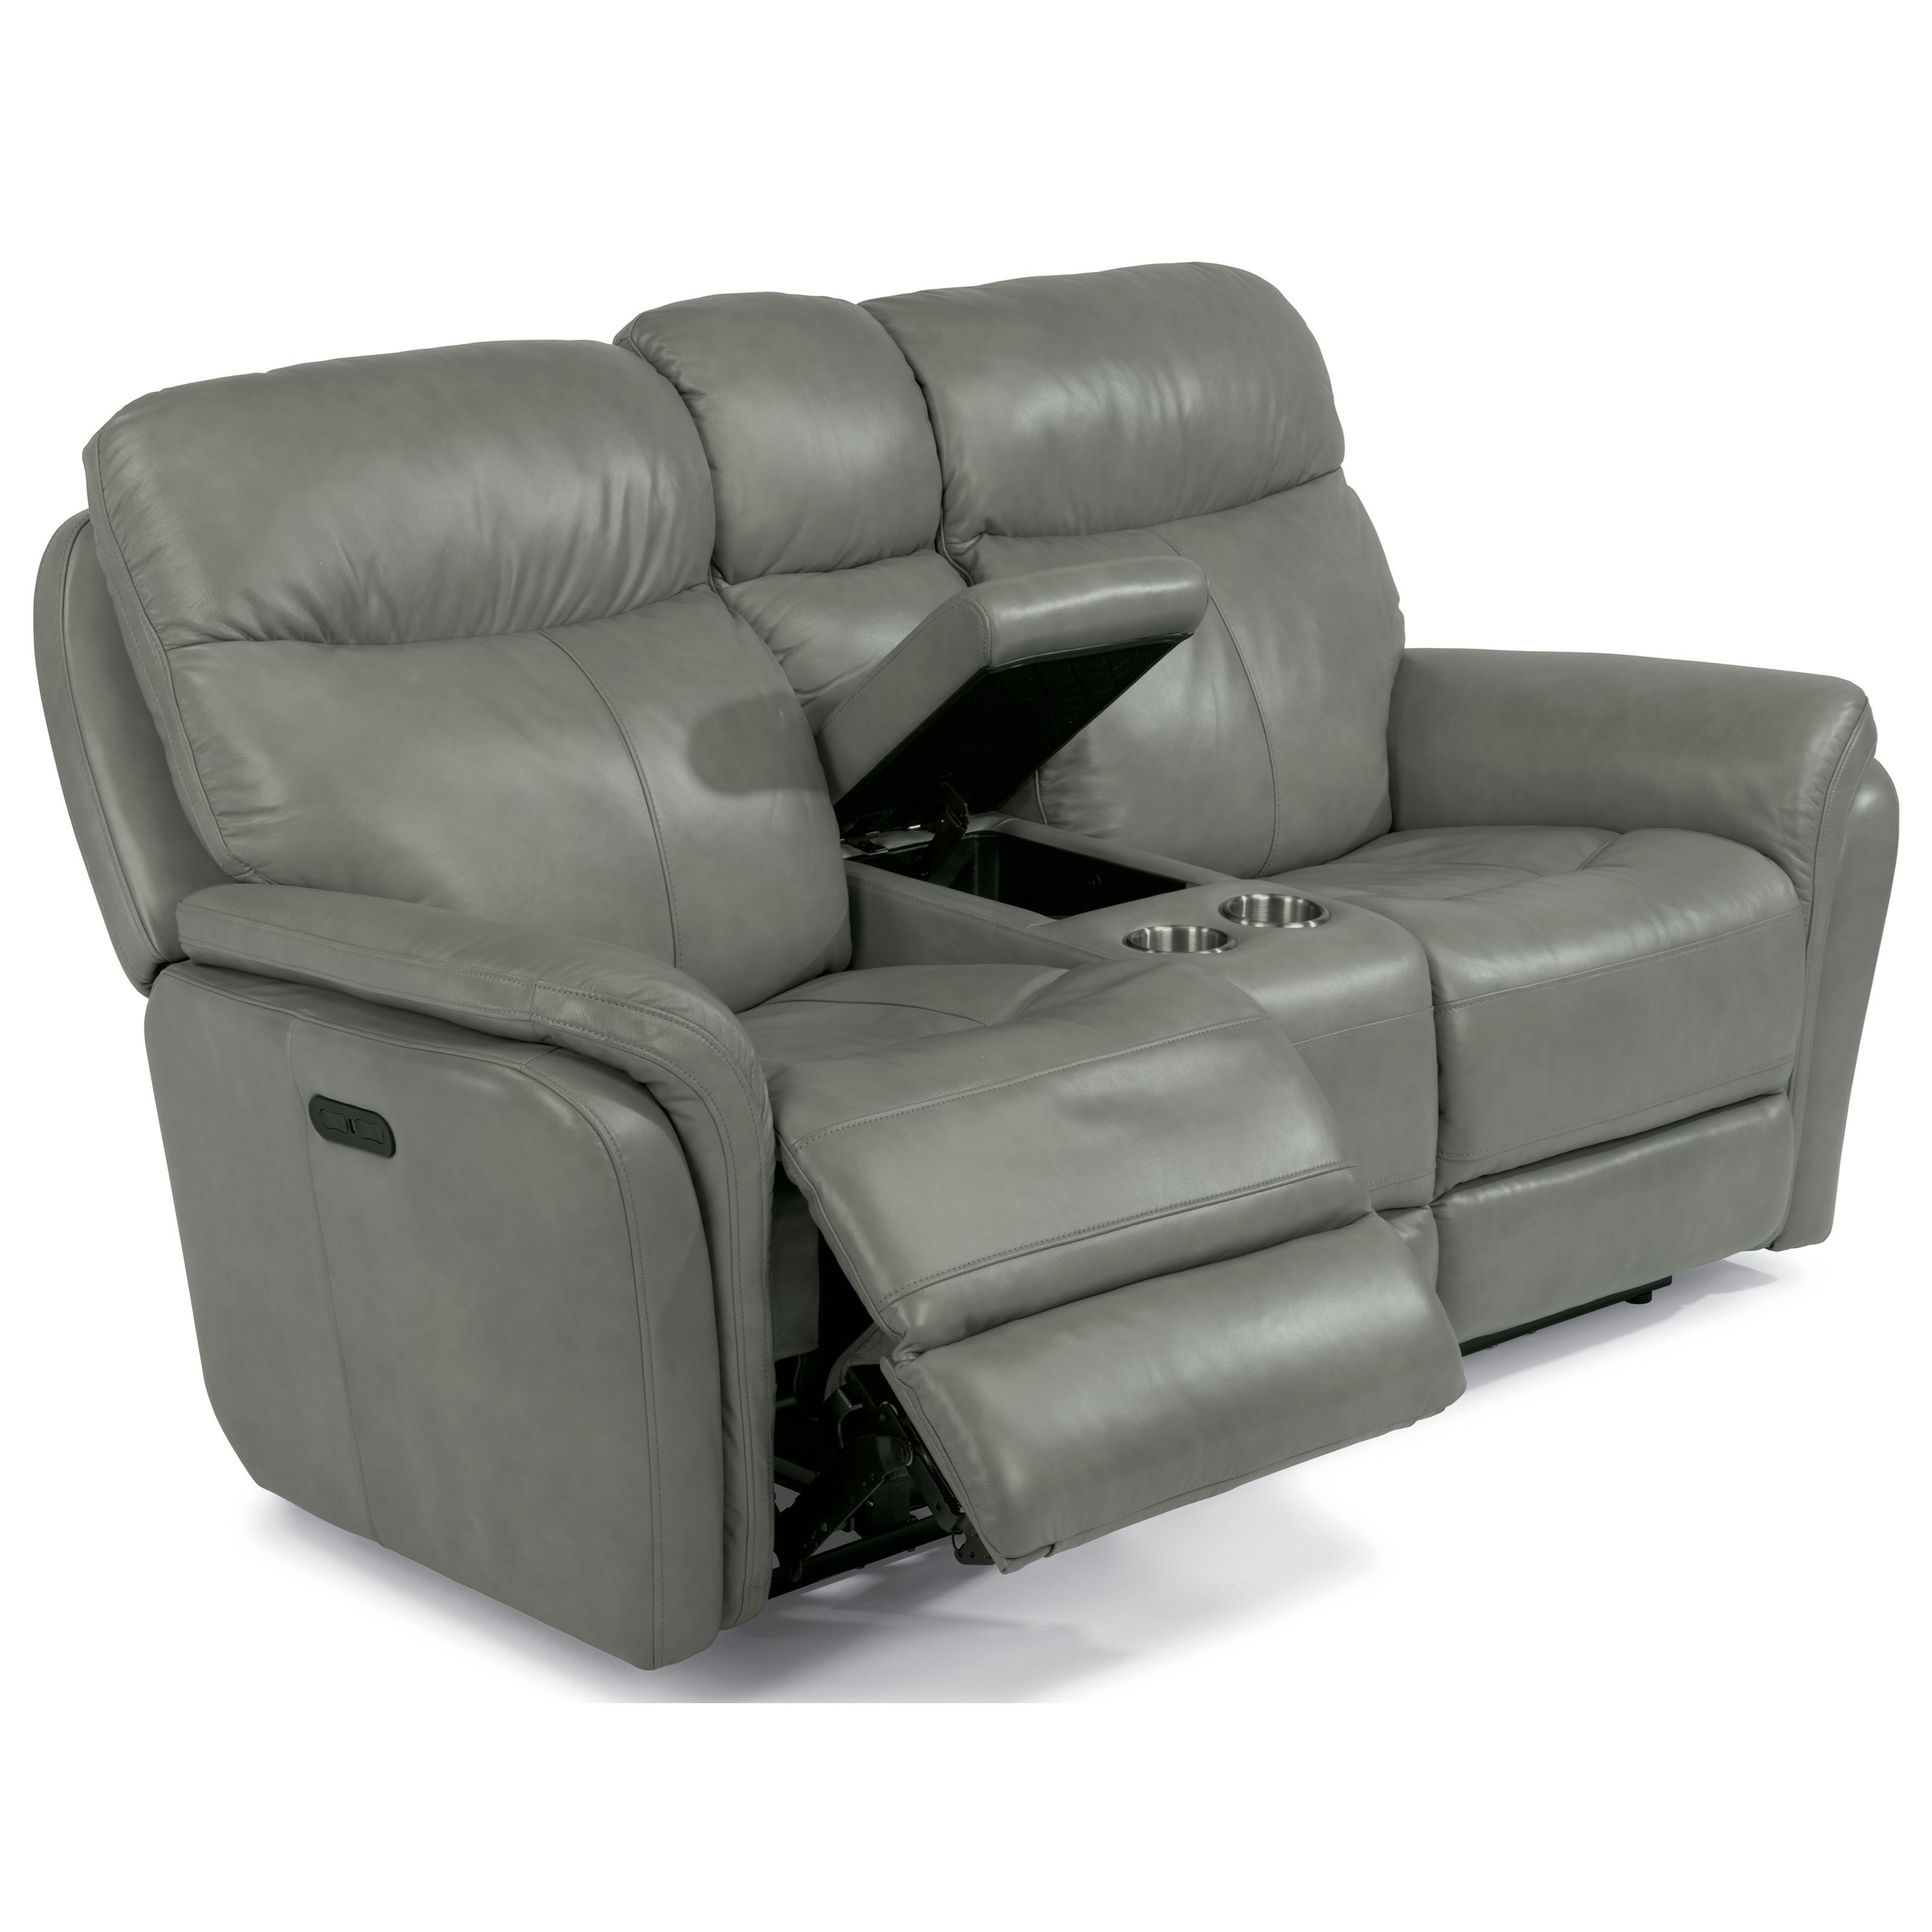 Flexsteel Latitudes-Zoey Power Reclining Love Seat with Power Headrest and Console  sc 1 st  Wayside Furniture & Flexsteel Latitudes-Zoey Power Reclining Love Seat with Power ... islam-shia.org